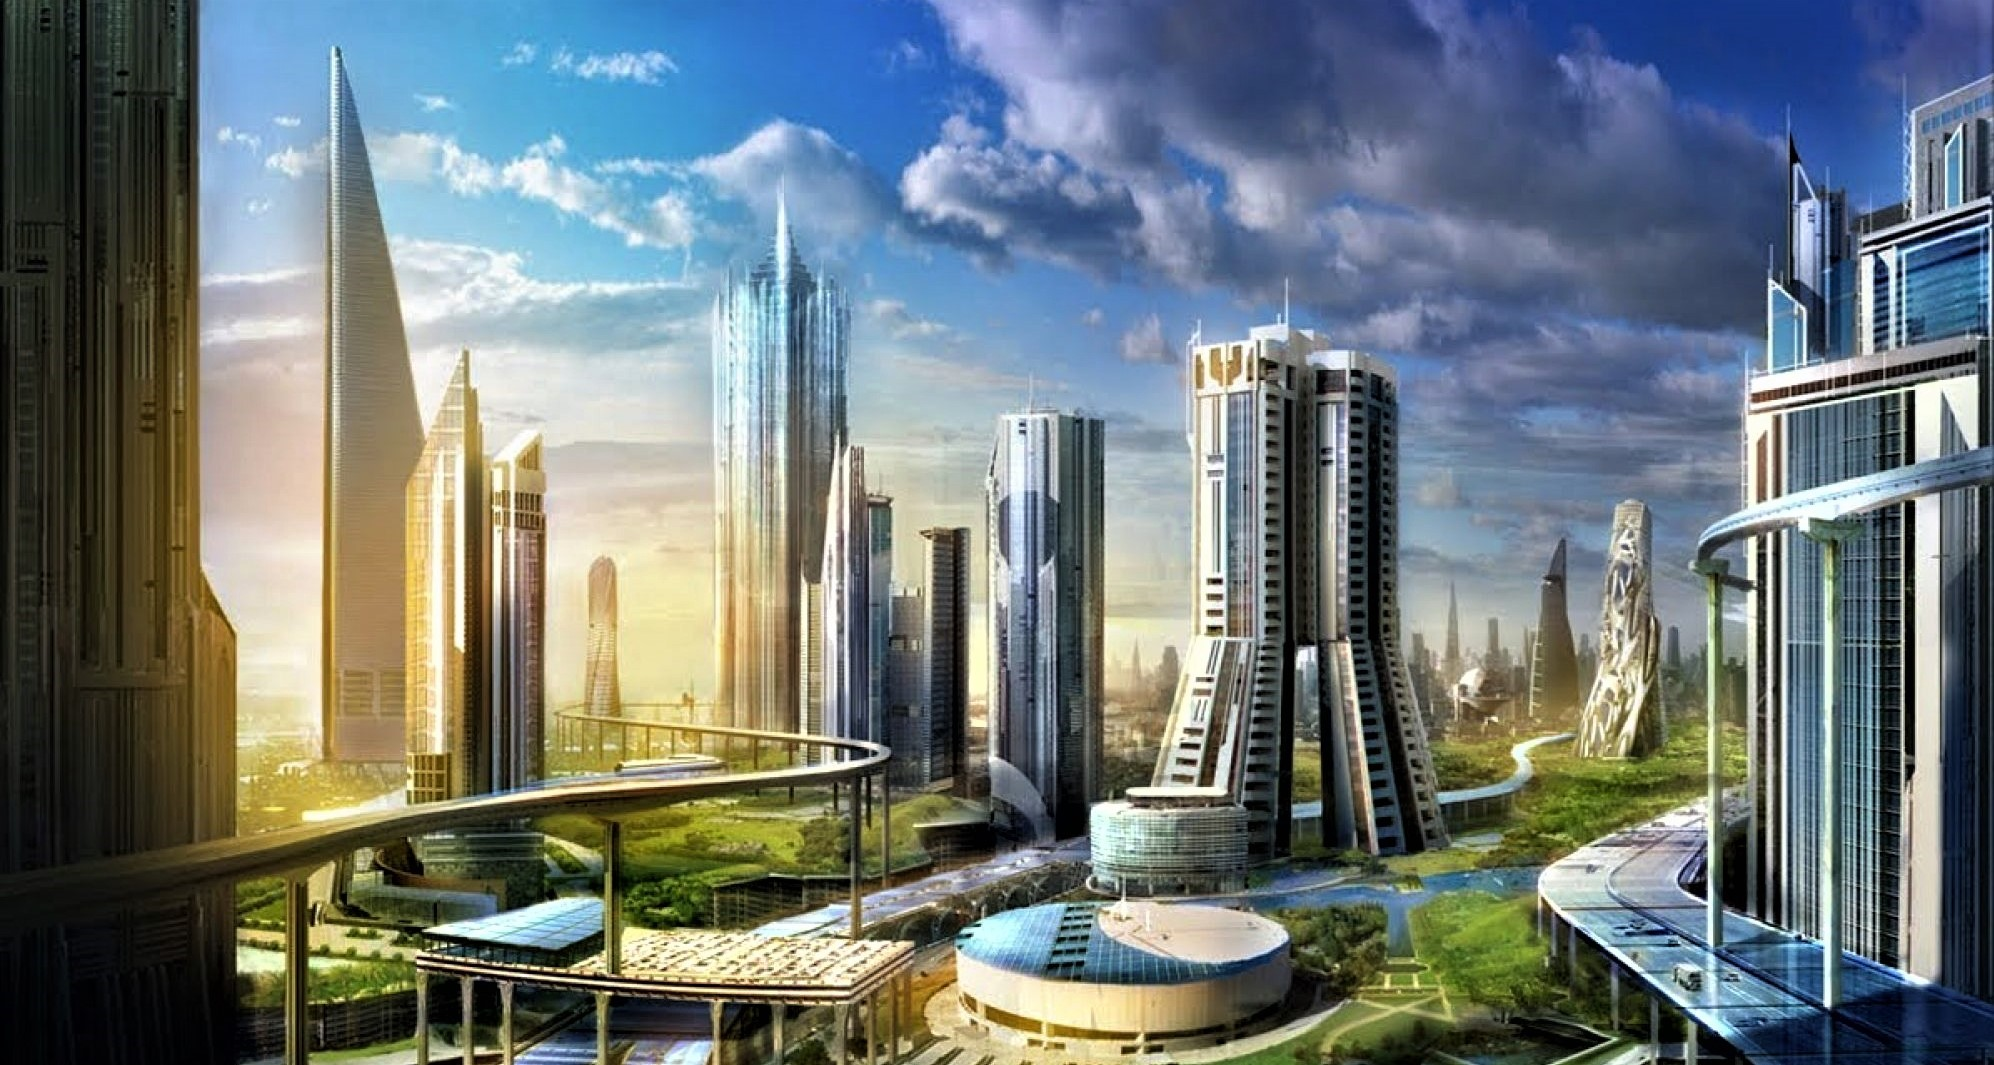 neom-a-futuristic-megacity-project-that-is-part-of-saudi-arabias-vision-2030.jpeg